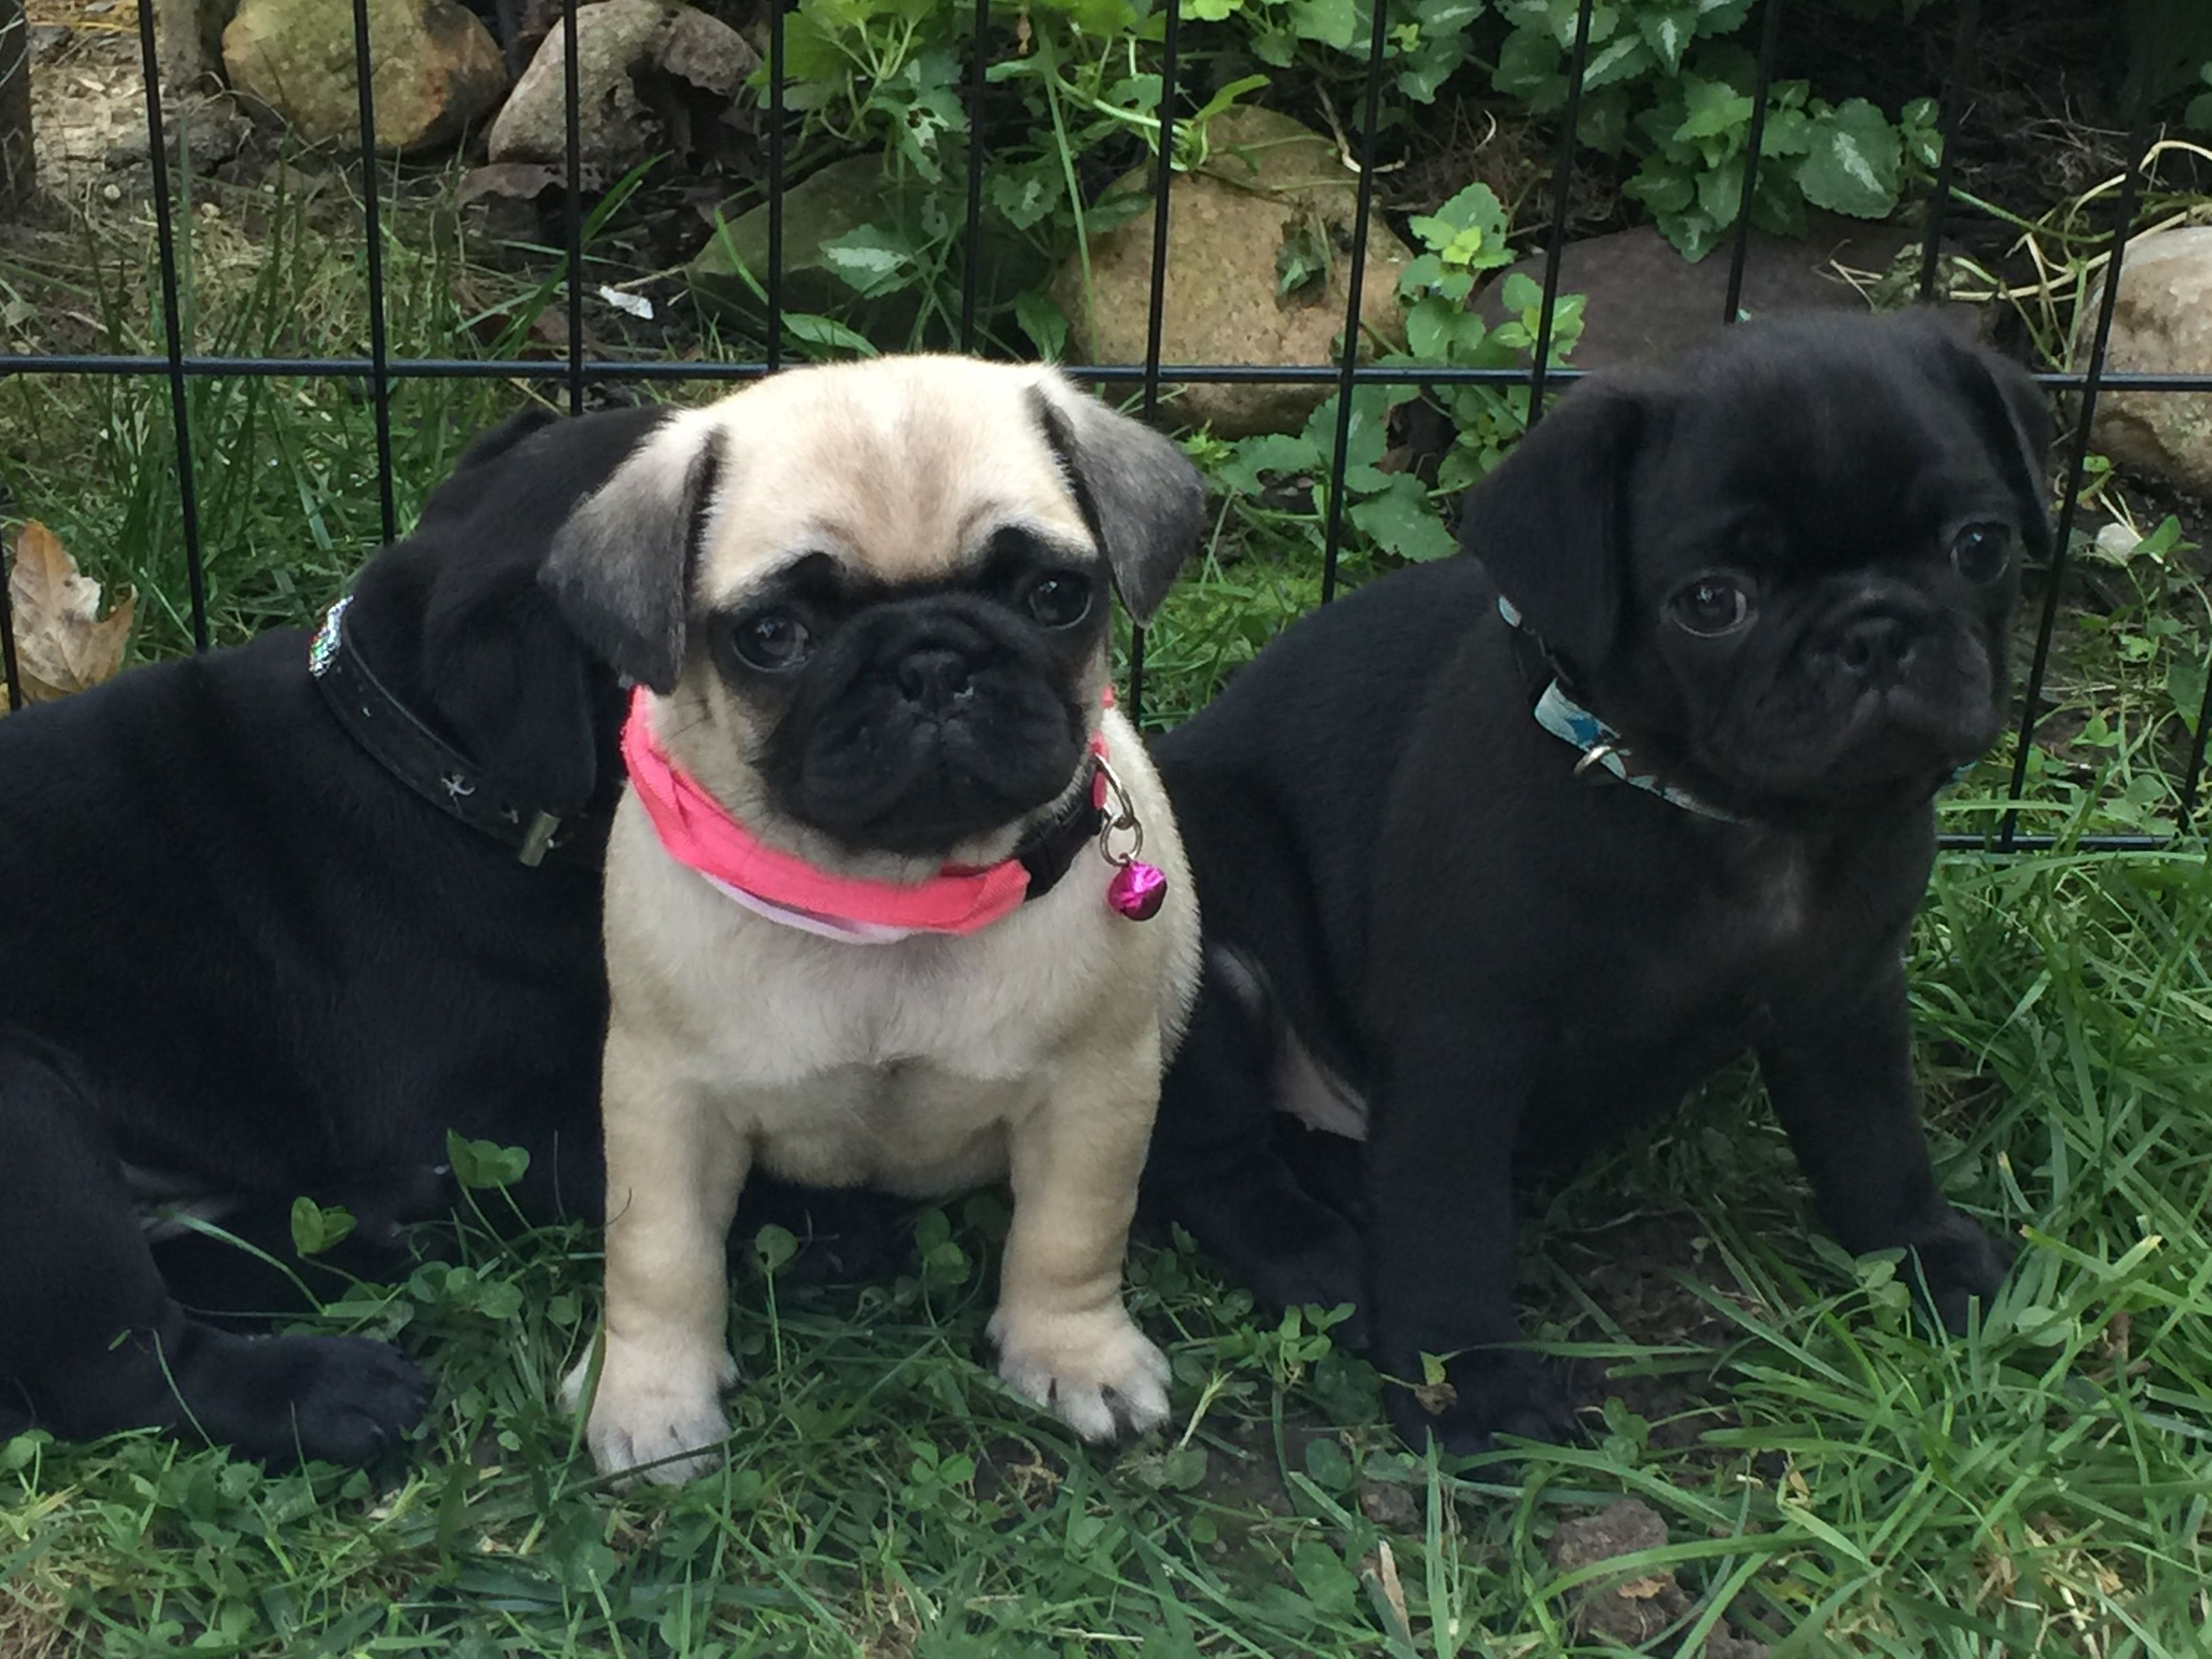 Puppy 6 Weeks Ready Now Fawn Female If You Re In Ohio And Interested Contact Me Dklars Icloud Com Pug Puppy Pugs Puppies